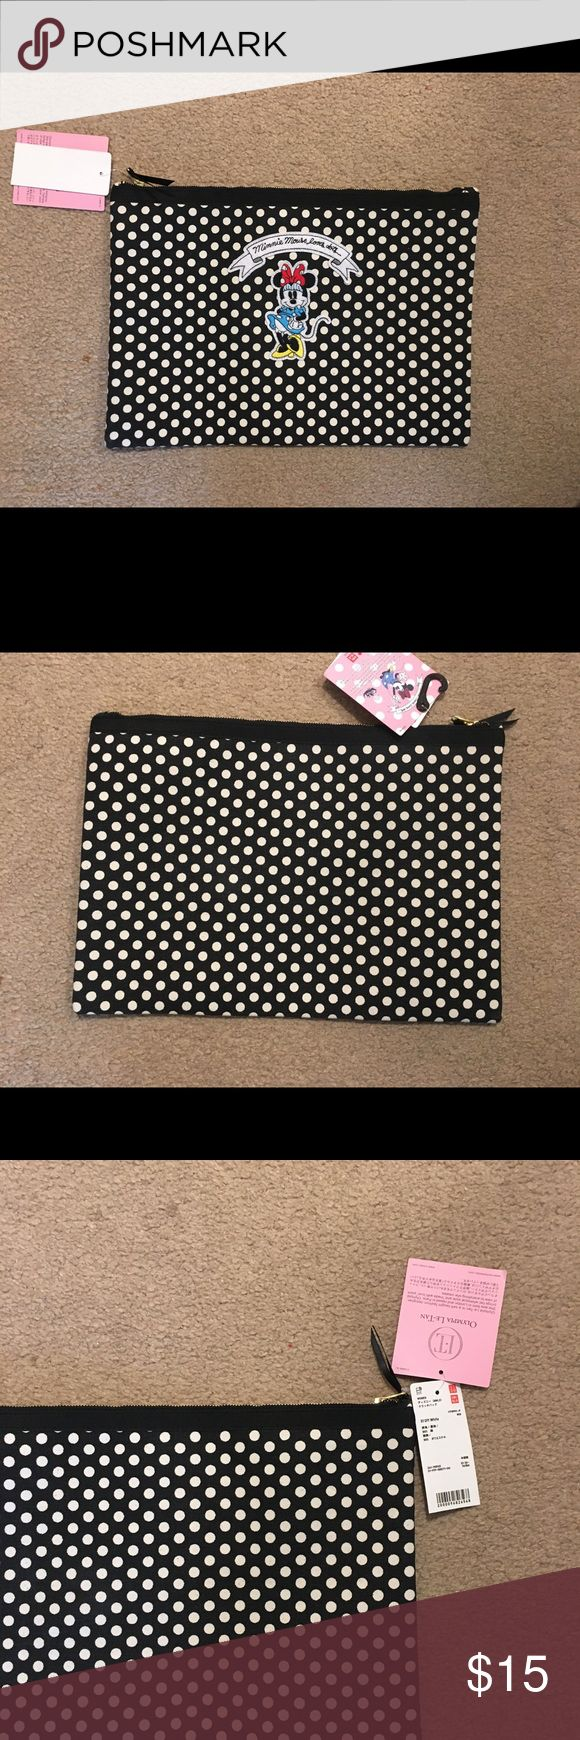 Minnie Mouse Bag Brand new! Brand? Uniqlo  good quality, durable, and can fit a MacBook Air 11 inch  perfect for using as a cosmetic bag or  traveling bag to fix your underwear or shirts! Uniqlo Bags Cosmetic Bags & Cases